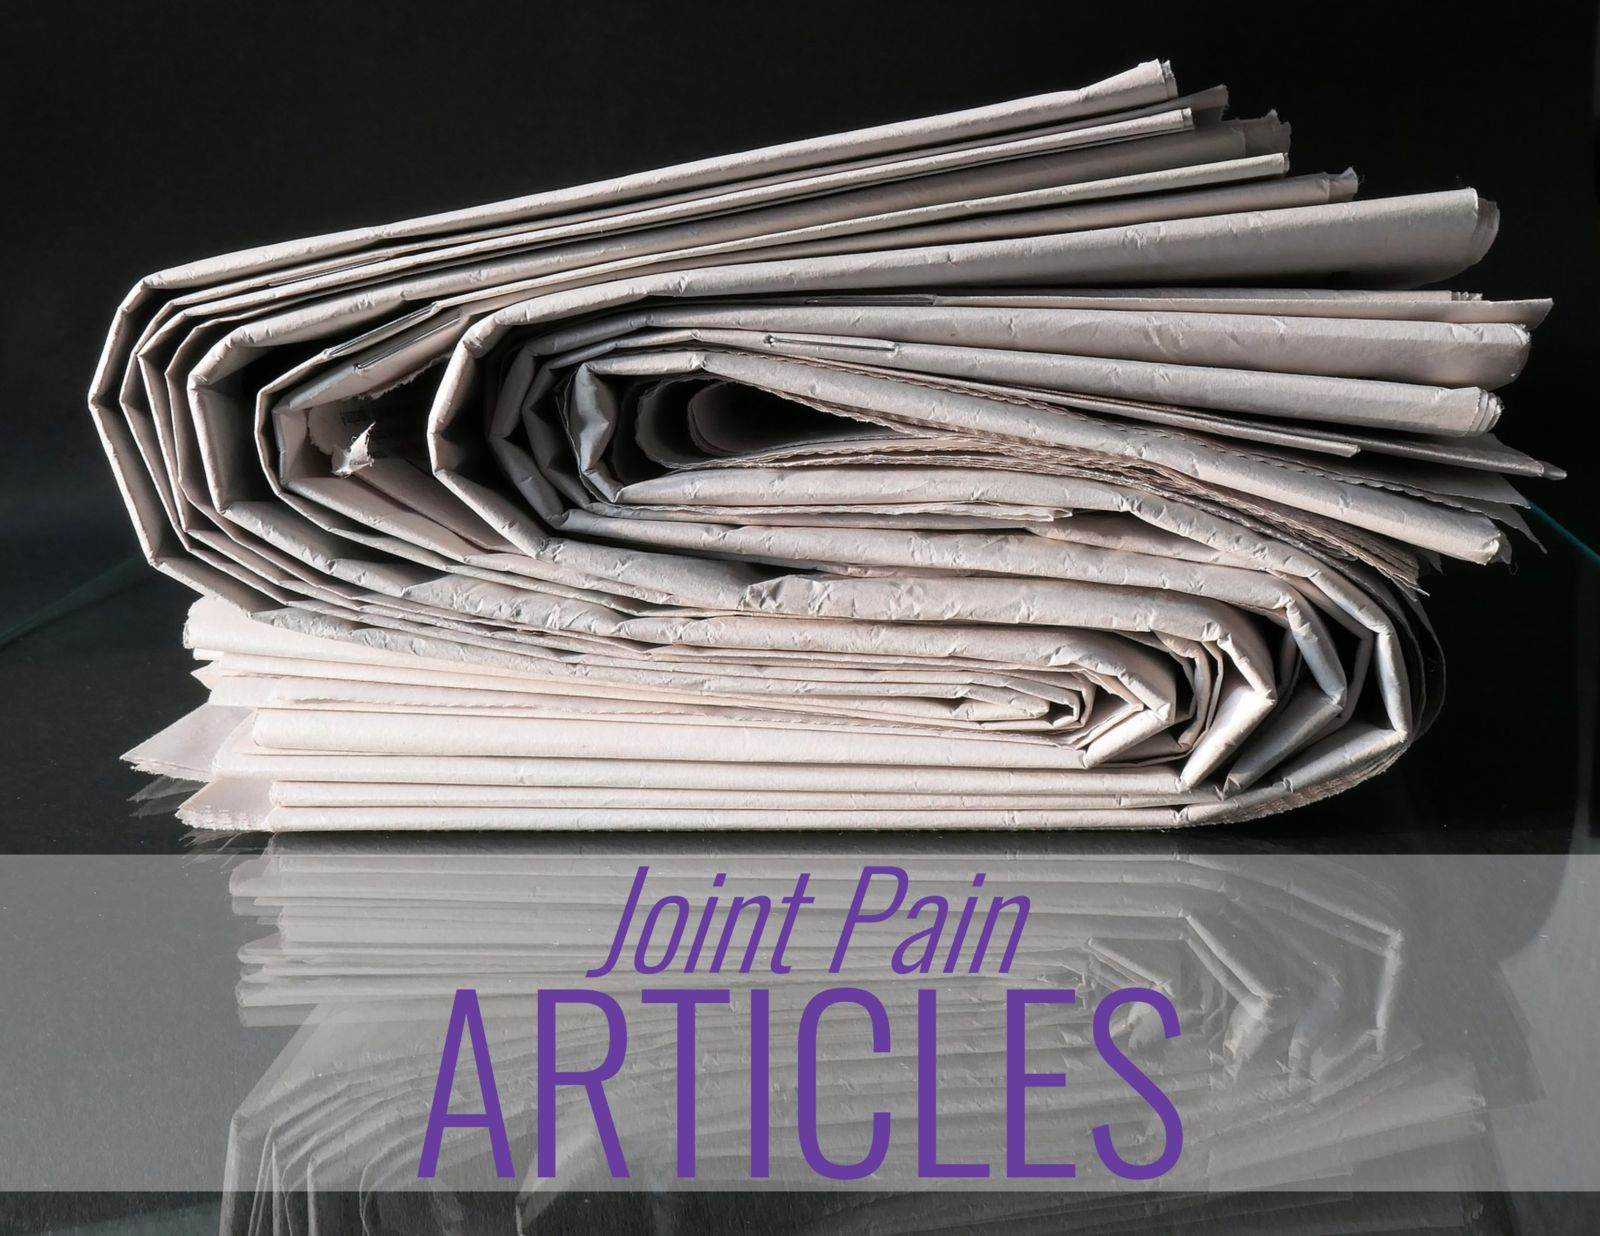 newspapers and the words: Joint Pain Articles